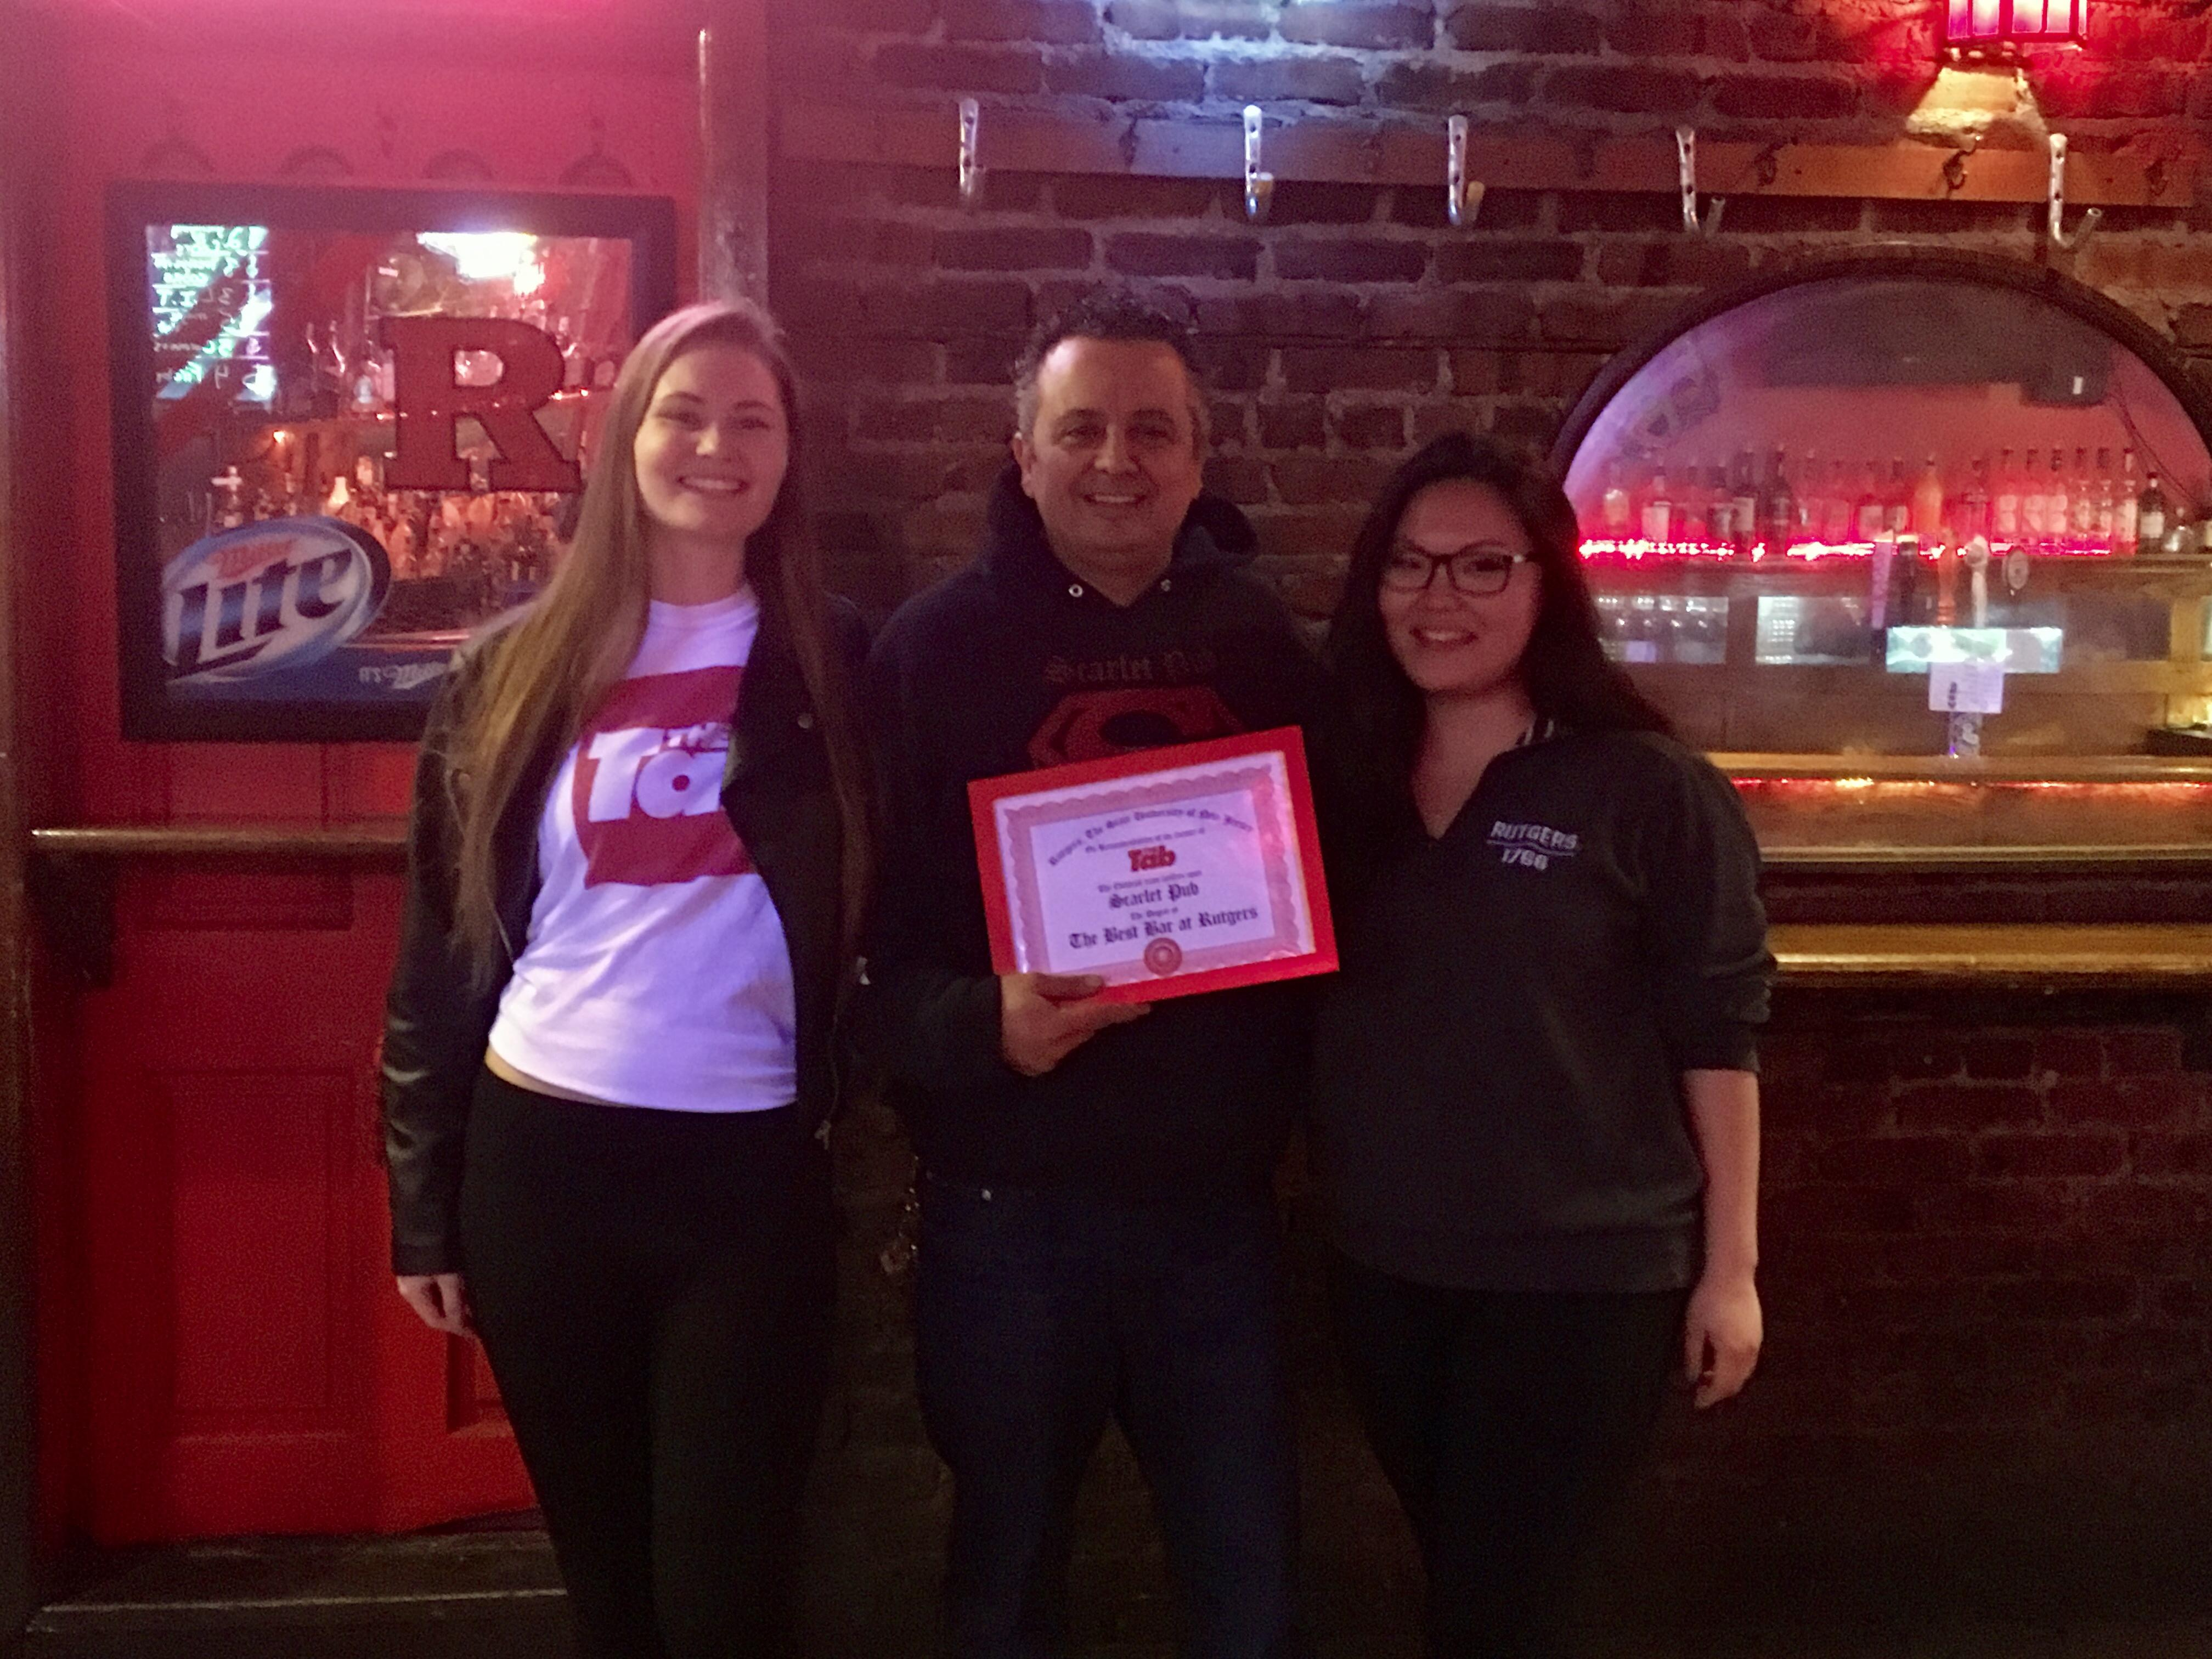 Scarlet Pub was voted the best bar at Rutgers by Tab readers